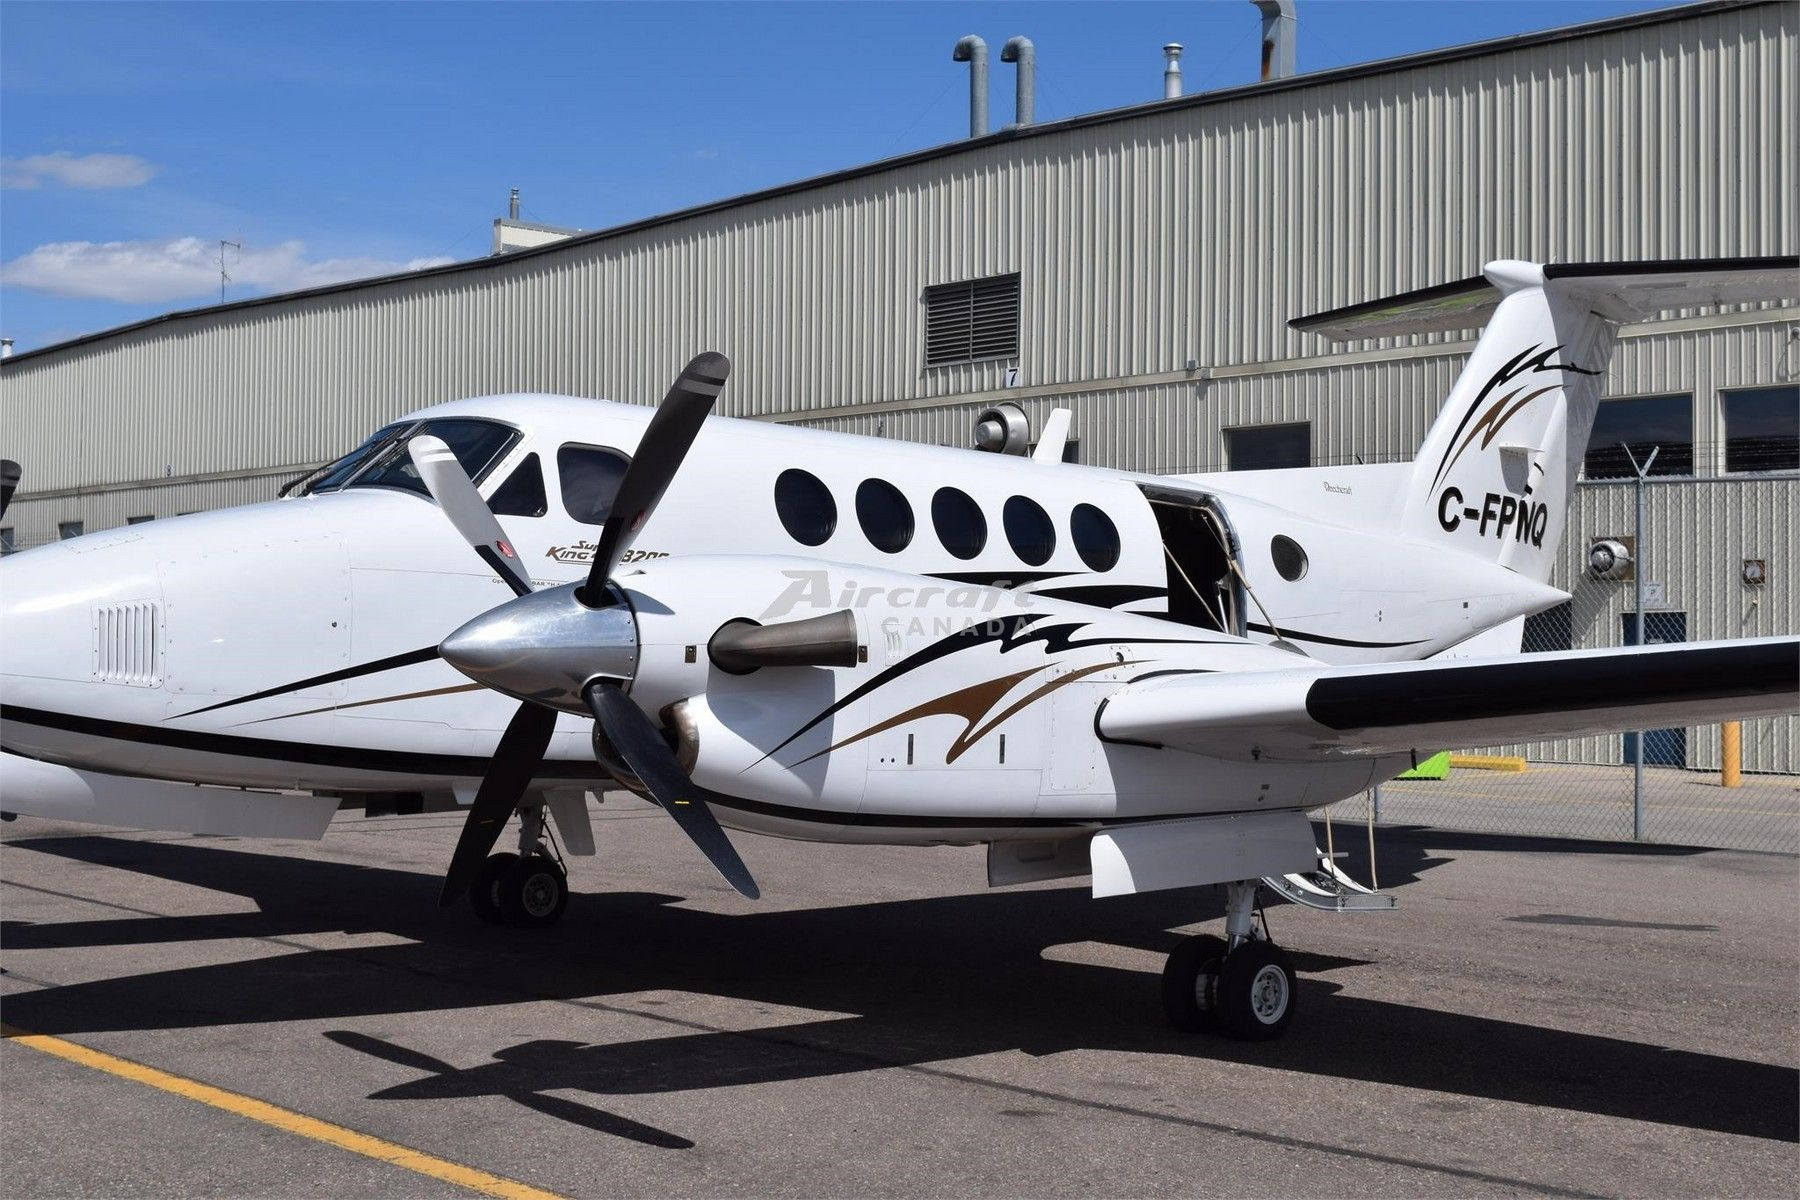 1998 Beechcraft King Air B200 for sale in Canada => www